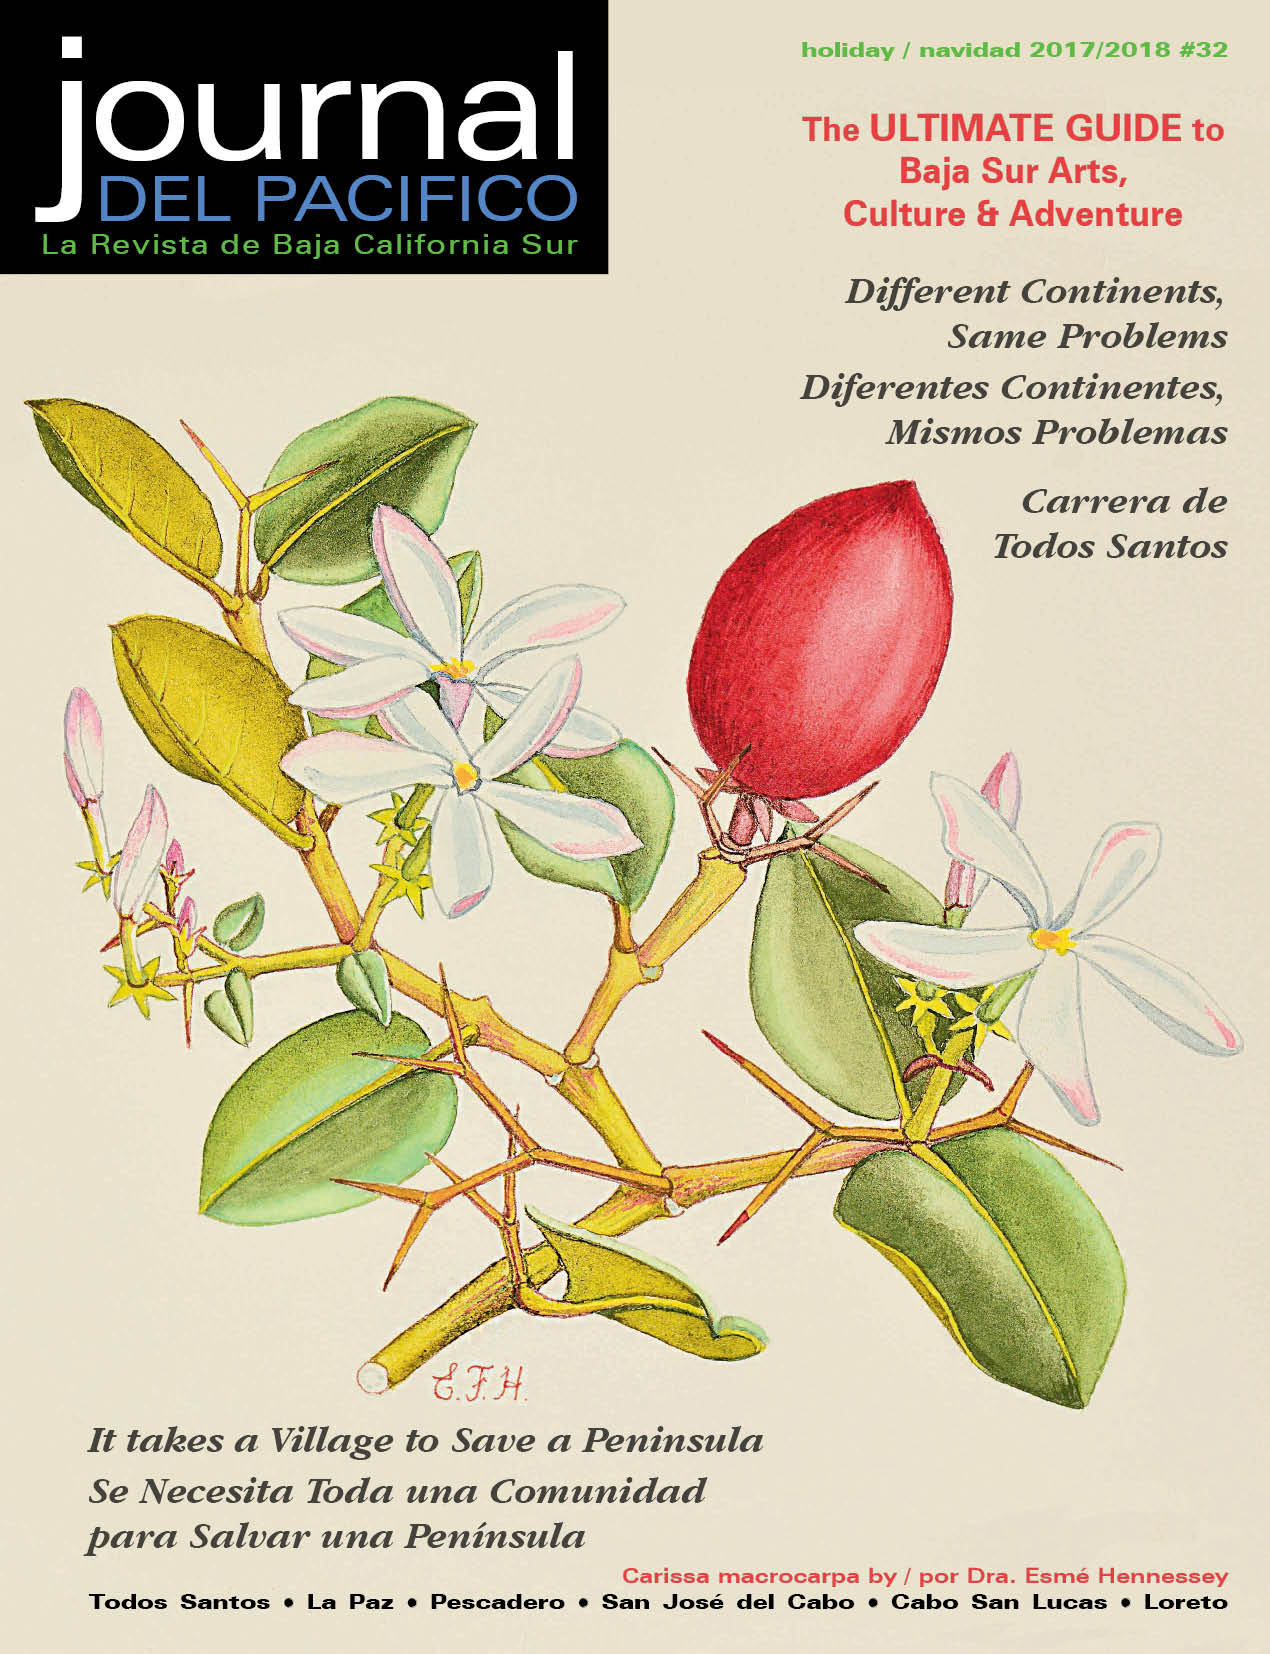 Holiday 2017/2018 Issue of Journal del Pacifico